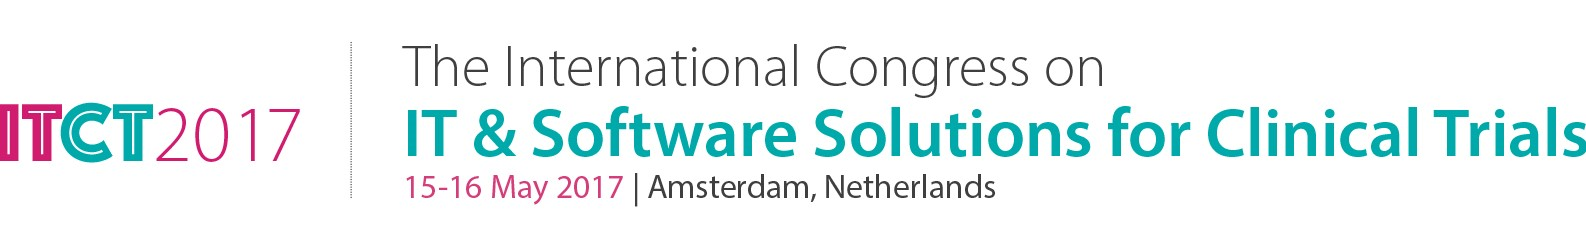 The International Congress on IT & Software Solutions for Clinical Trials